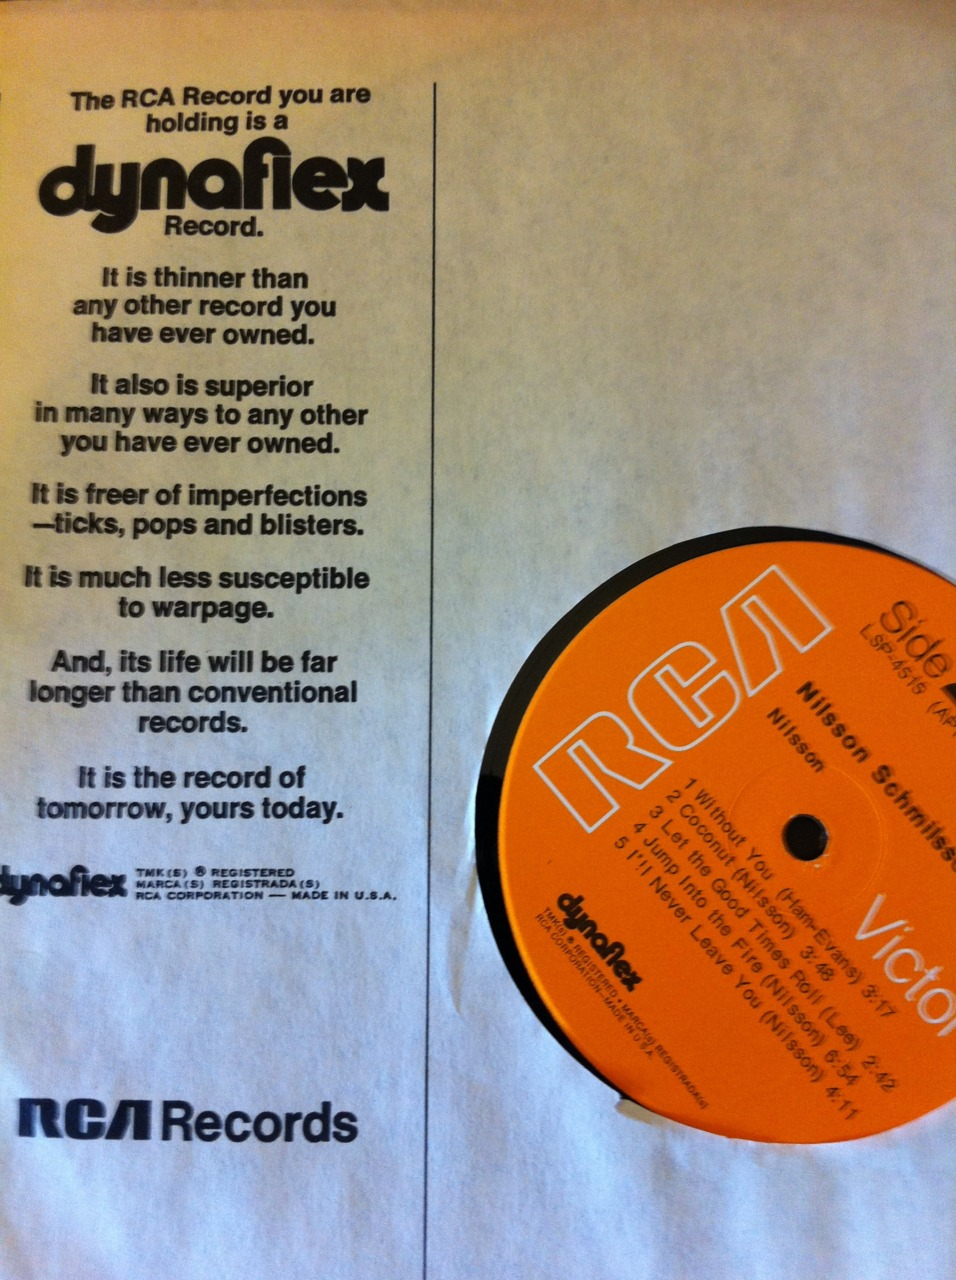 Orange pop records s profile hear the world s sounds - To Me Dynaflex Had It S Good And Bad It Was Quieter Even After 40 Years Many Of My Old Dynaflex Albums Still Have Very Little Surface Noise